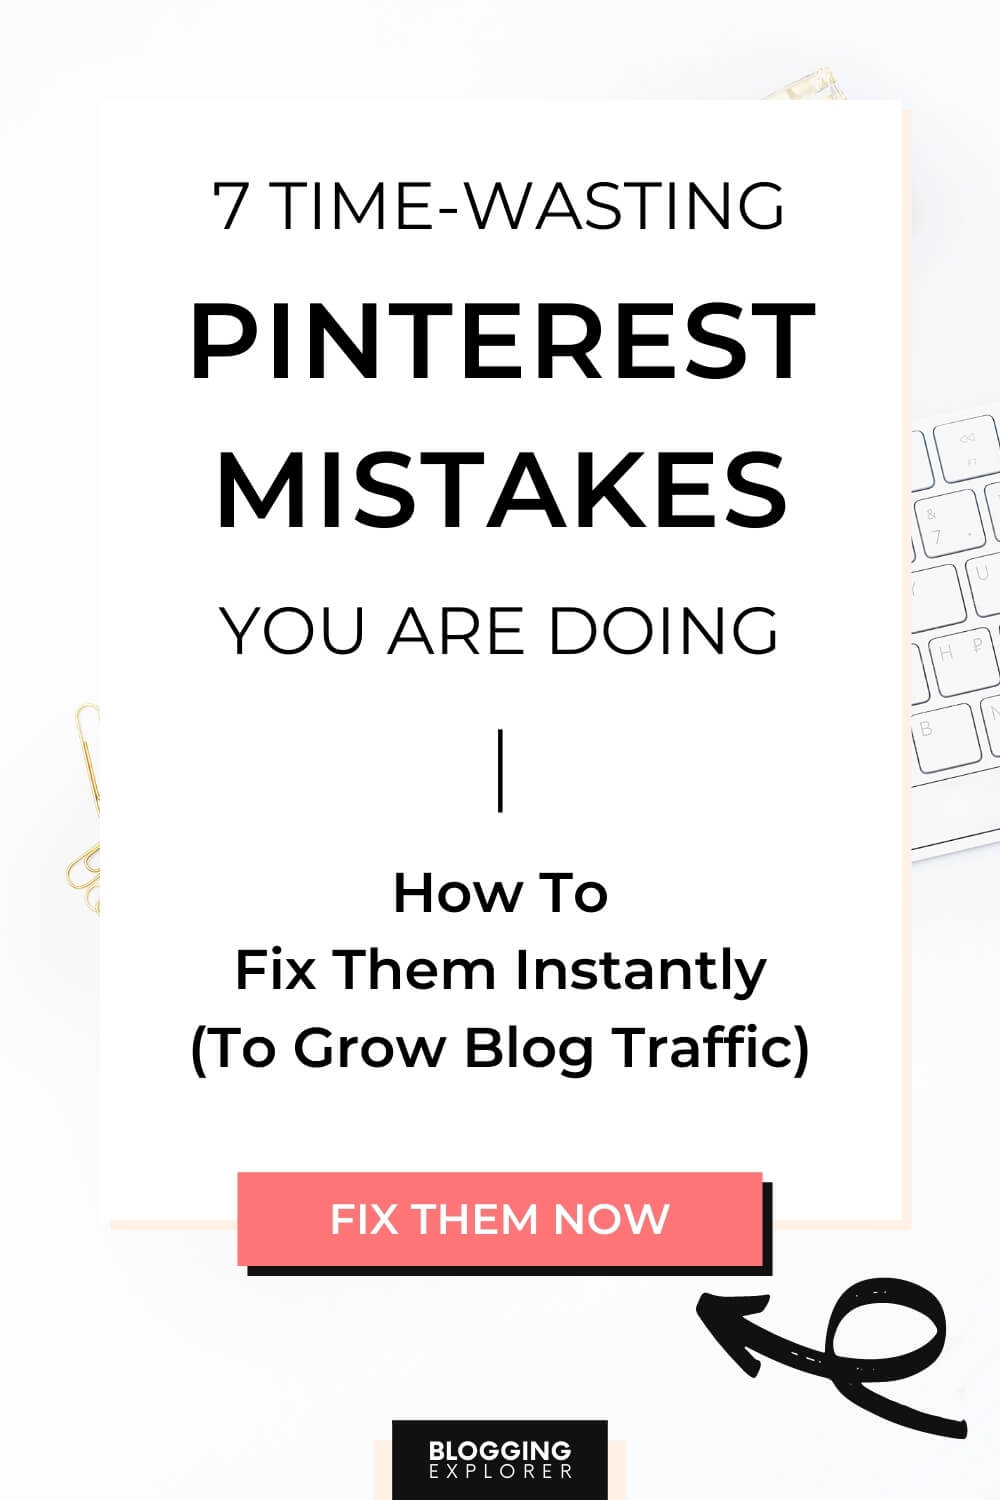 Pinterest marketing mistakes and how to fix them instantly - Grow blog traffic with Pinterest